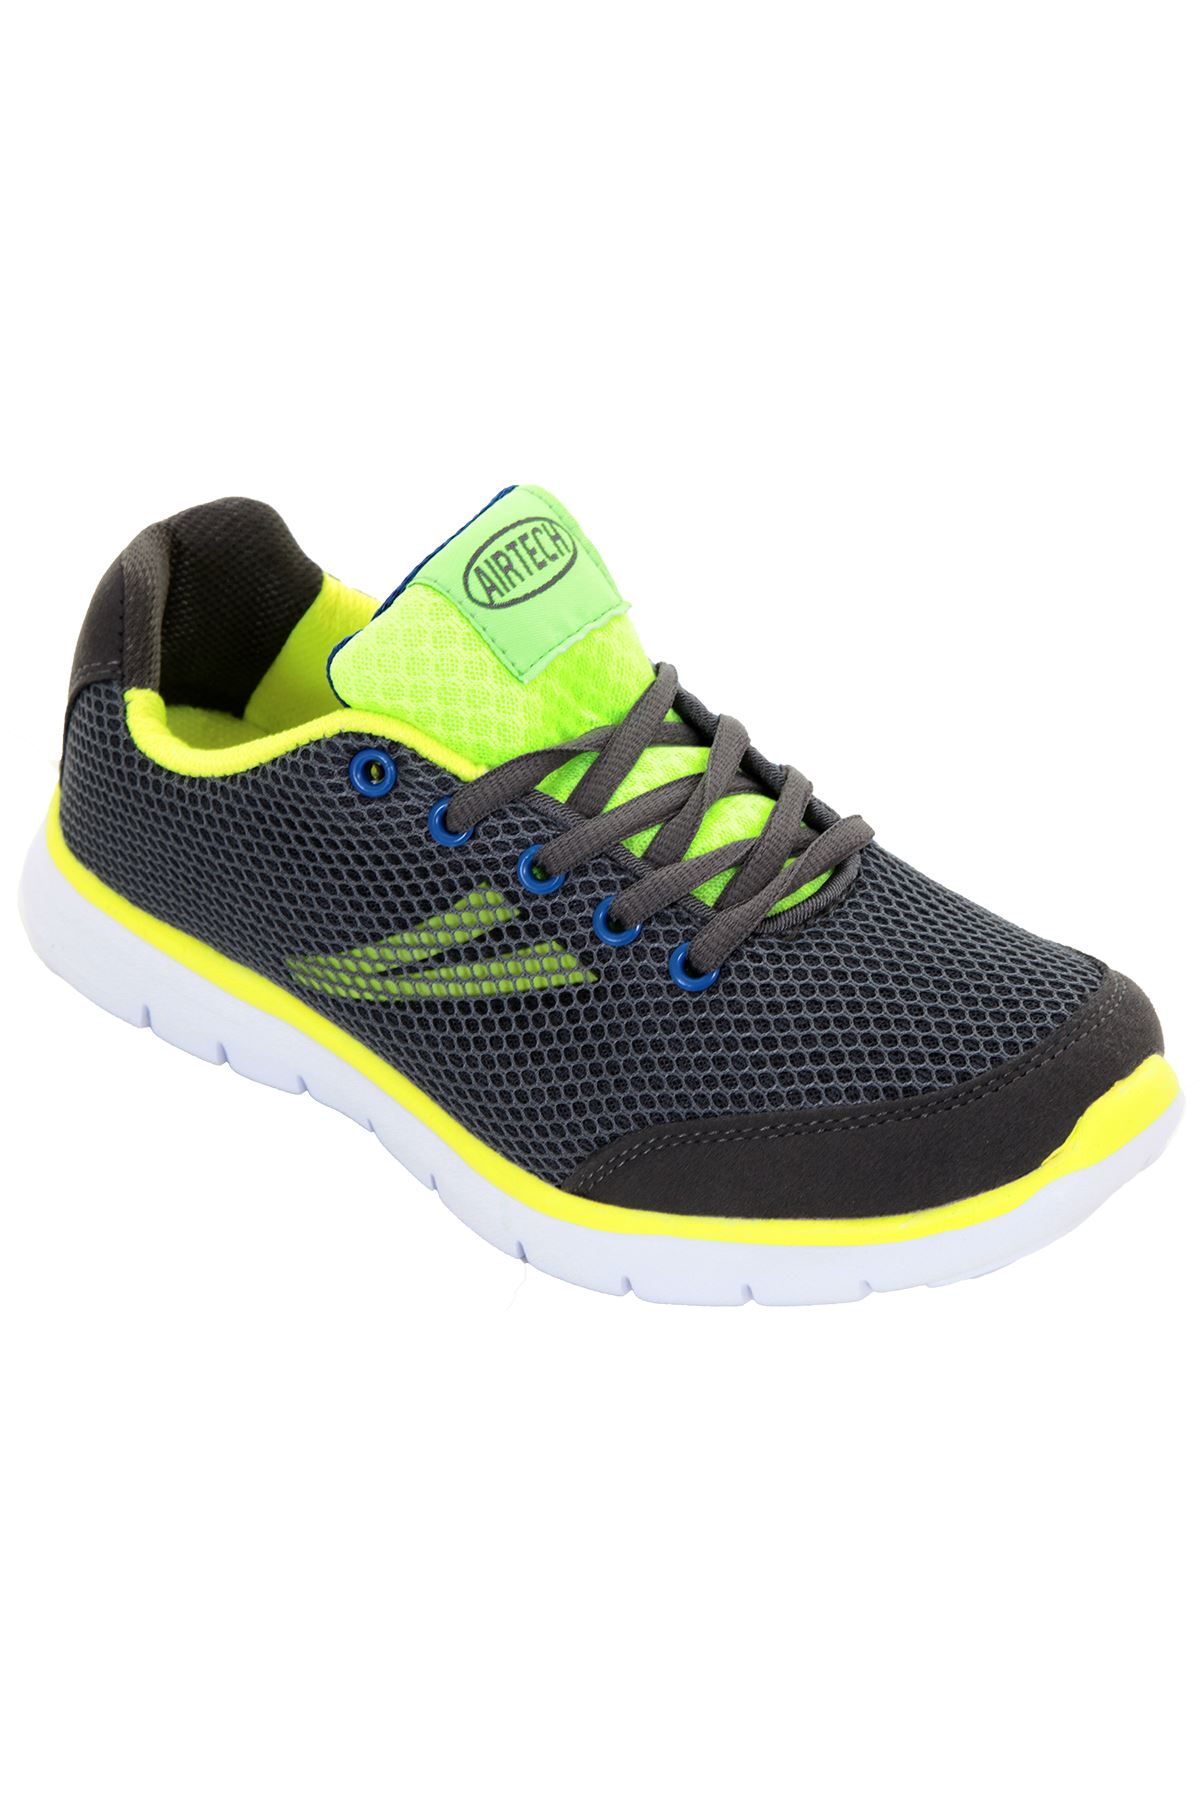 Womens Padded Mesh Neon Lace Up Trainers Sneakers Flat ...